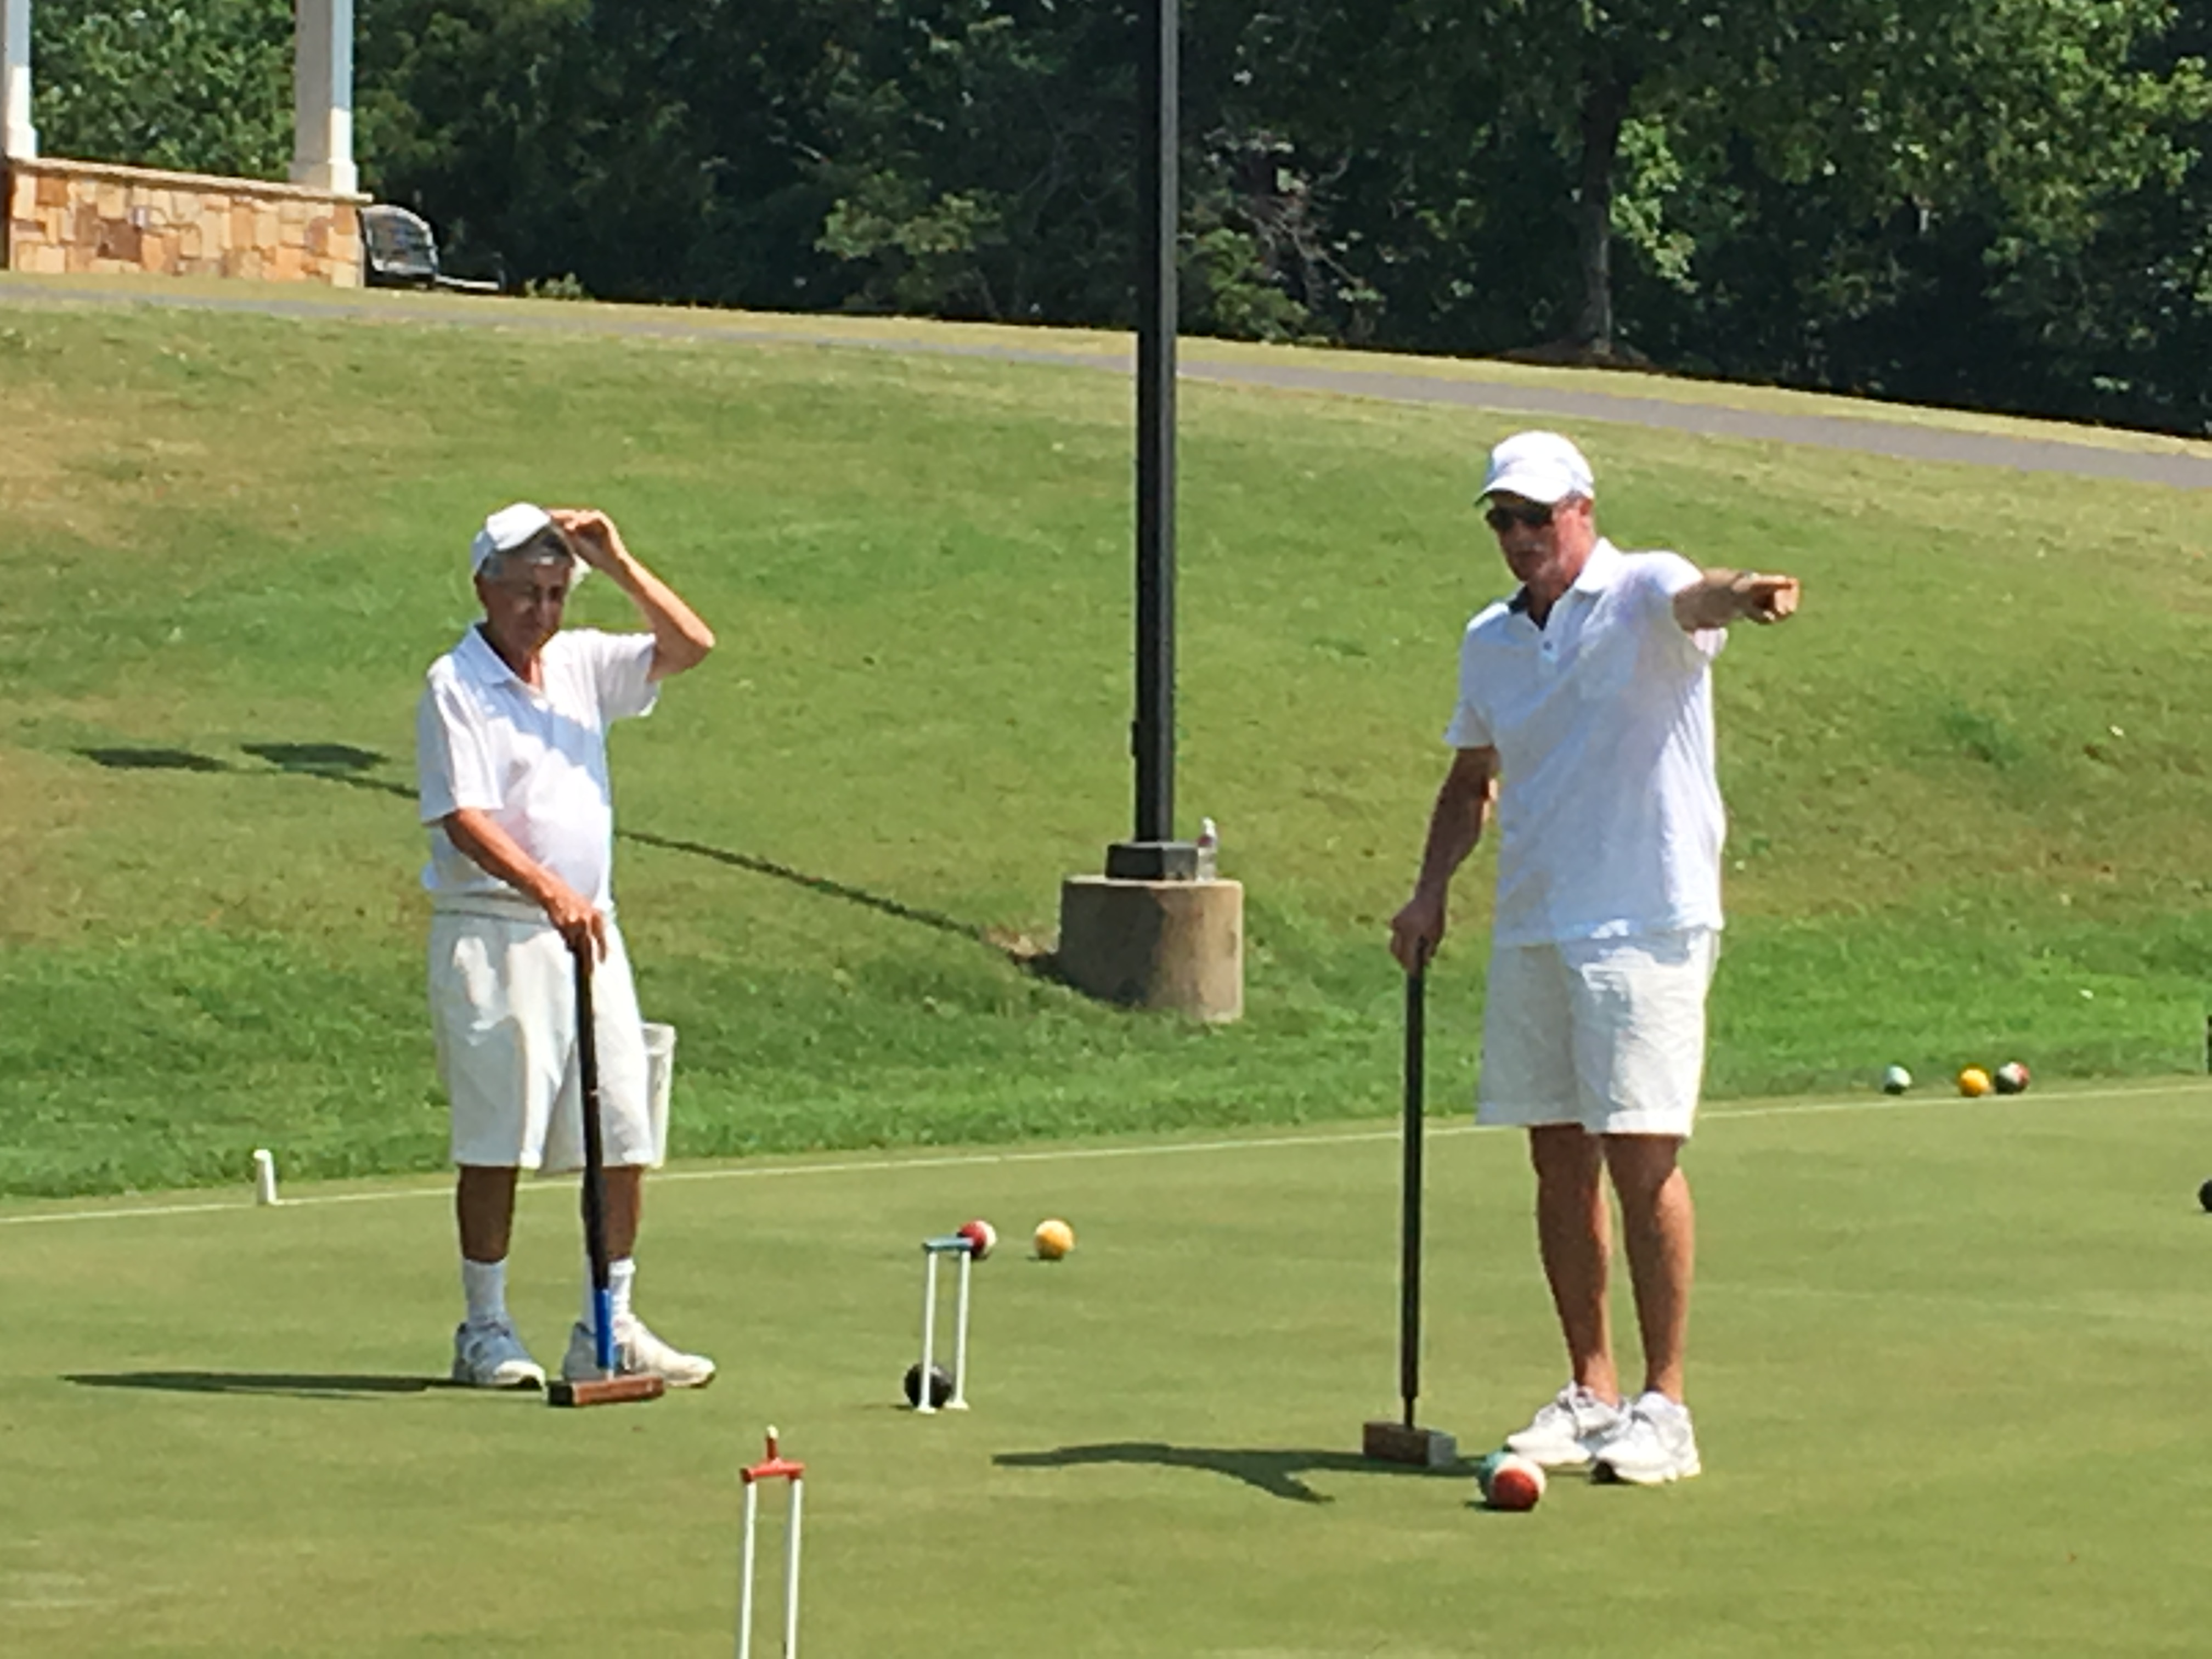 Two men in white shirts and shorts practice a version of croquet called six wicket at the Tega Cay court.